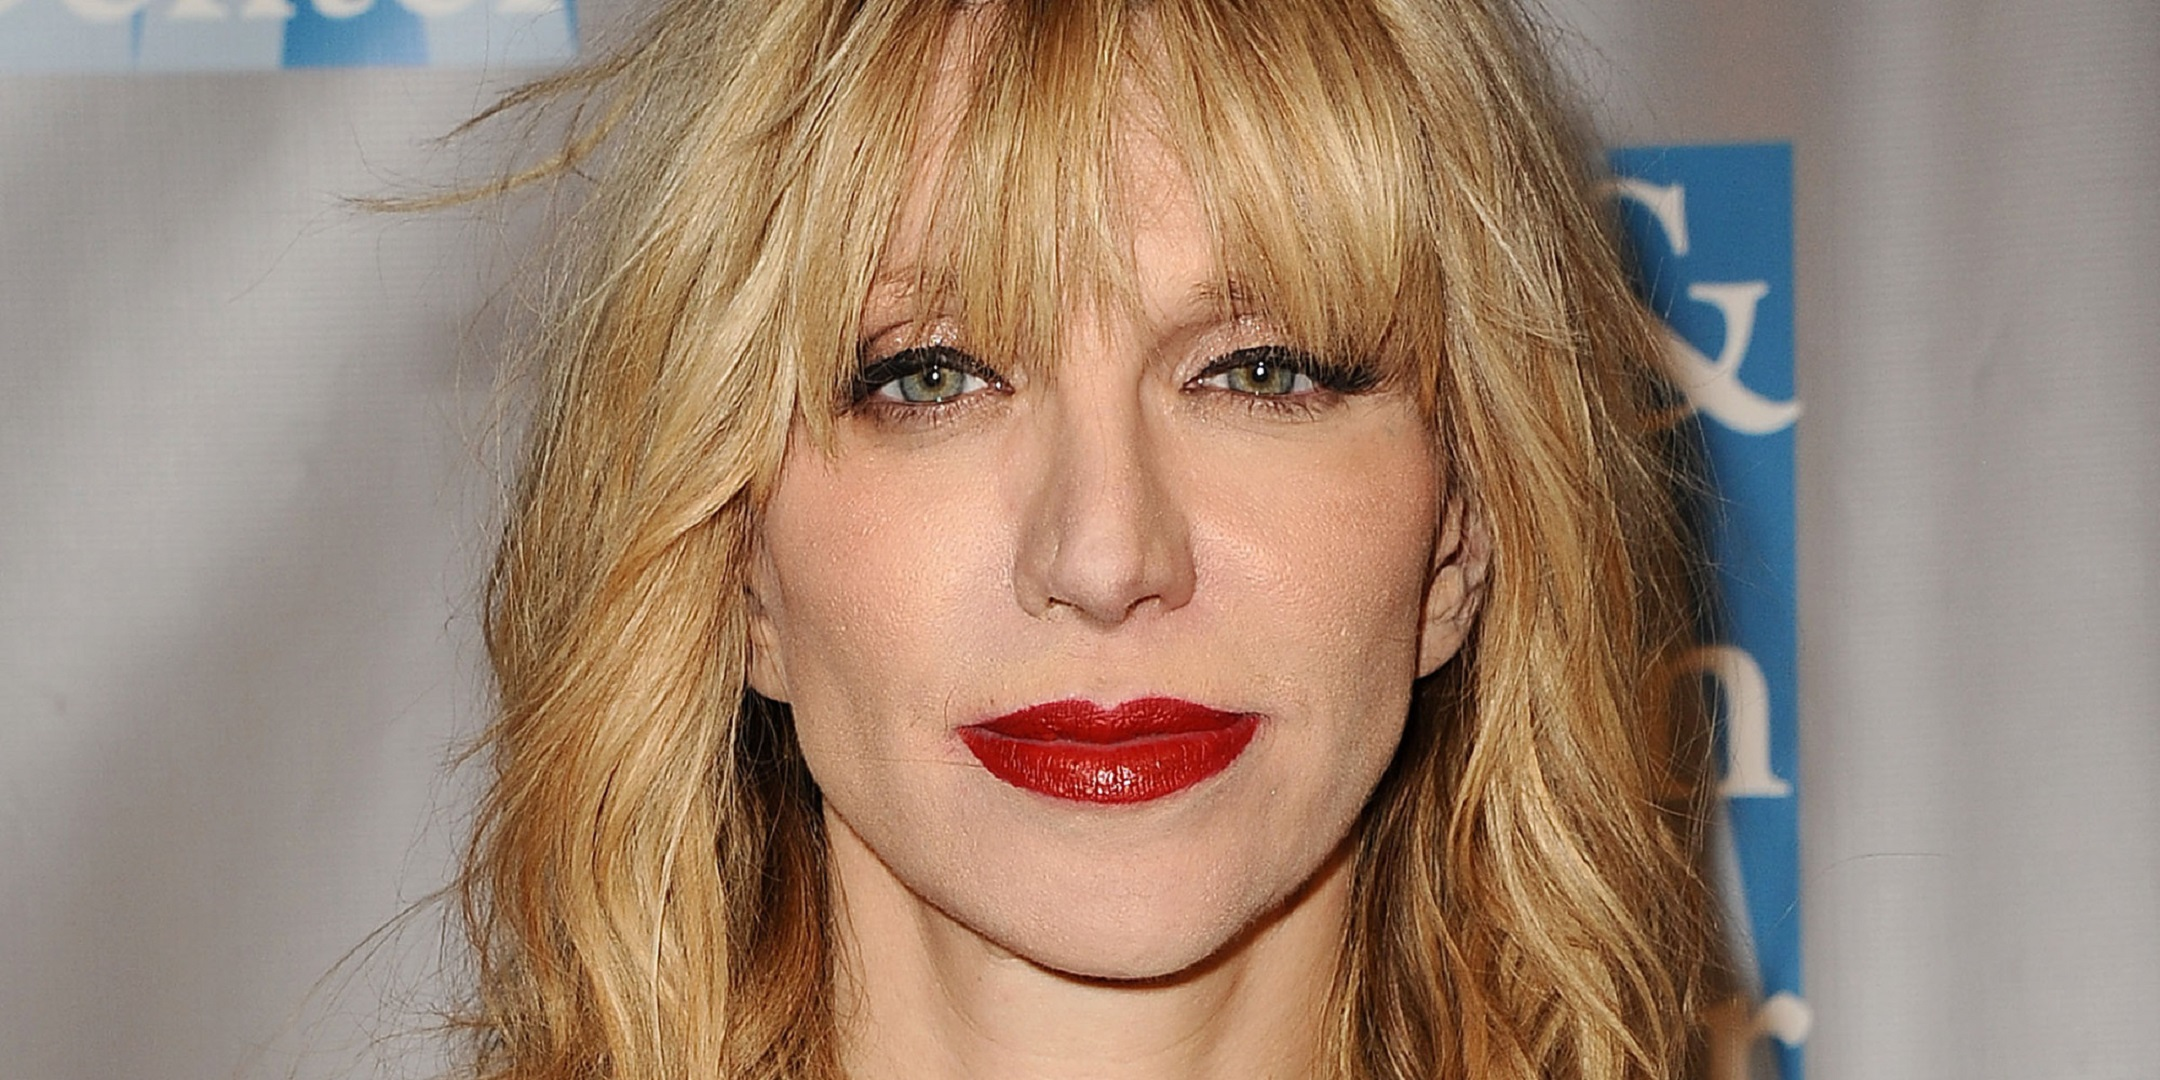 Courtney Love Wallpapers Images Photos Pictures Backgrounds